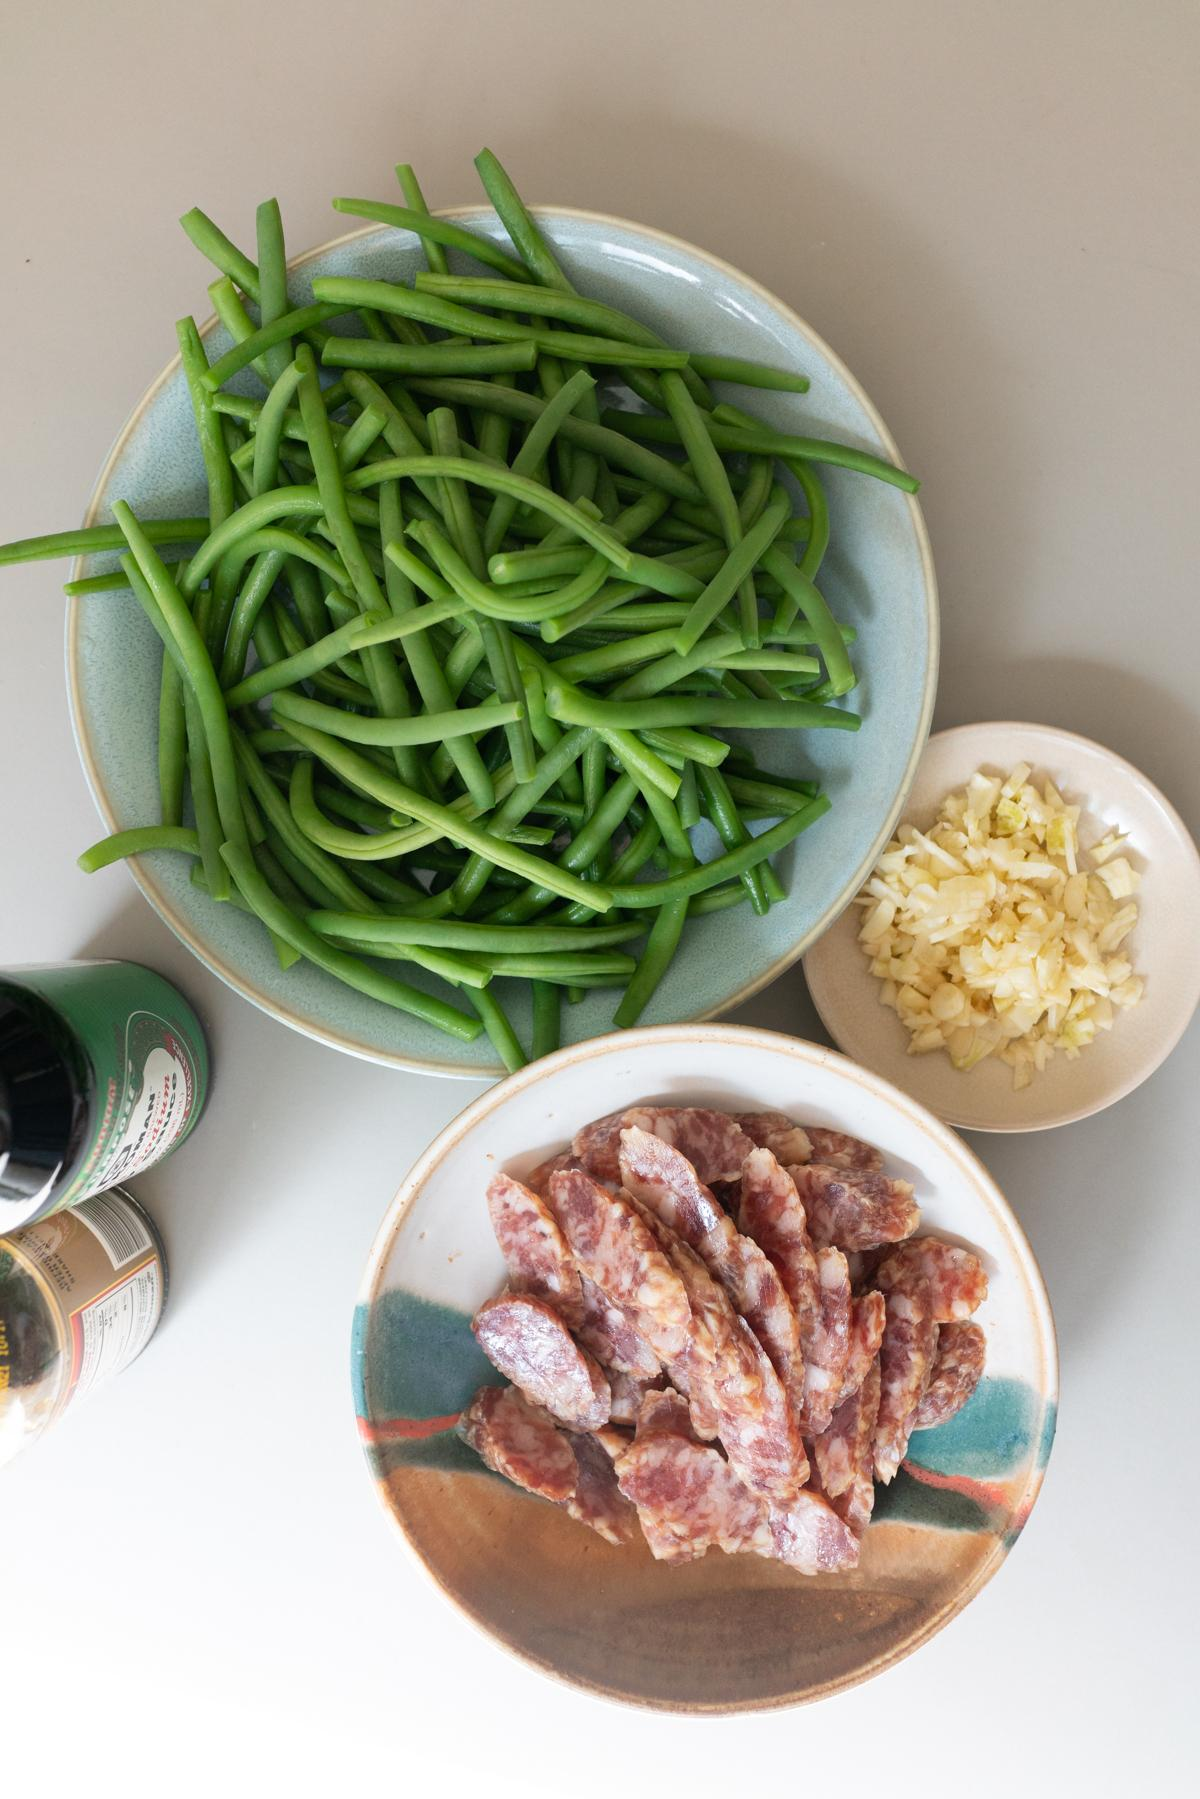 Ingredients for Chinese sausage and green beans: chinese sausage, green beans, garlic, soy sauce, and oyster sauce